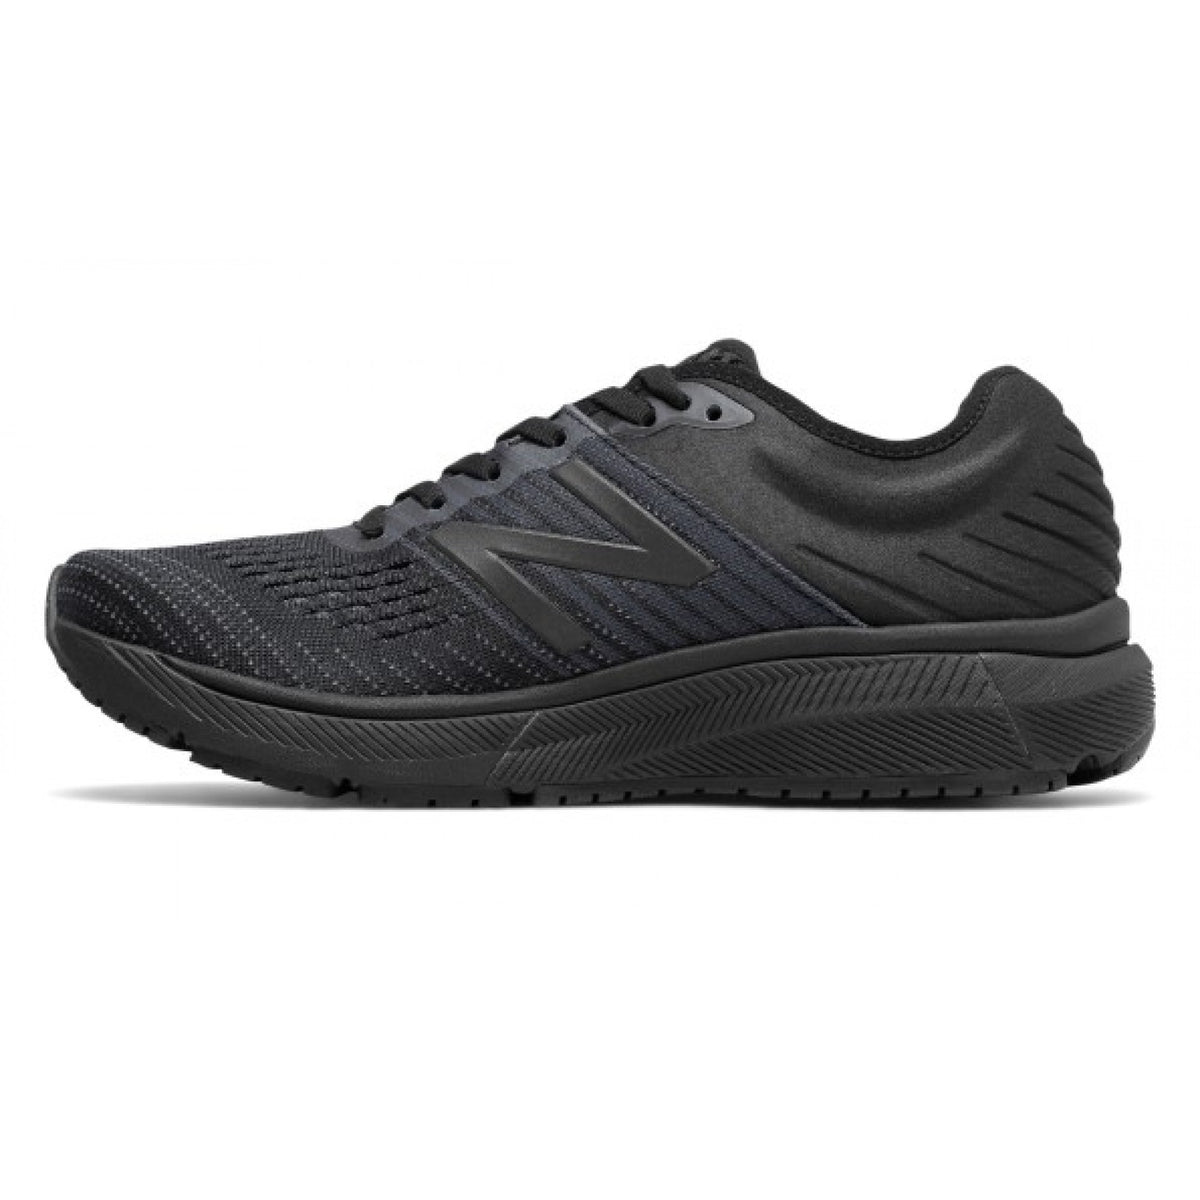 New Balance 860v10 Mens 2E Wide